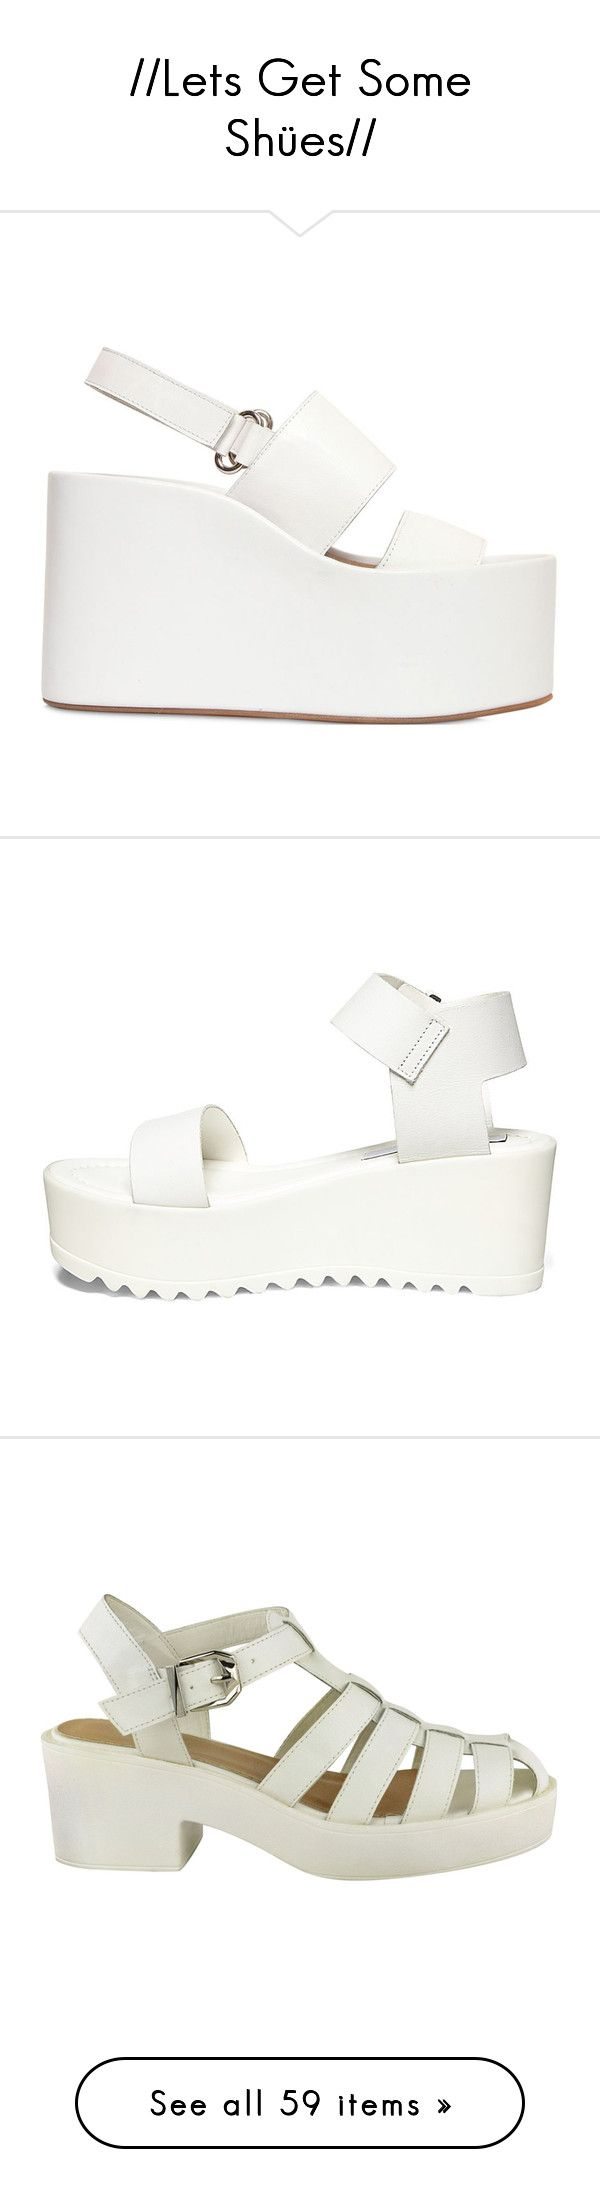 """""""//Lets Get Some Shües//"""" by wallfl0wers ❤ liked on Polyvore featuring shoes, blackandwhite, sandals, white, white wedge shoes, leather sandals, white platform shoes, wedges shoes, wedge sandals and heels"""